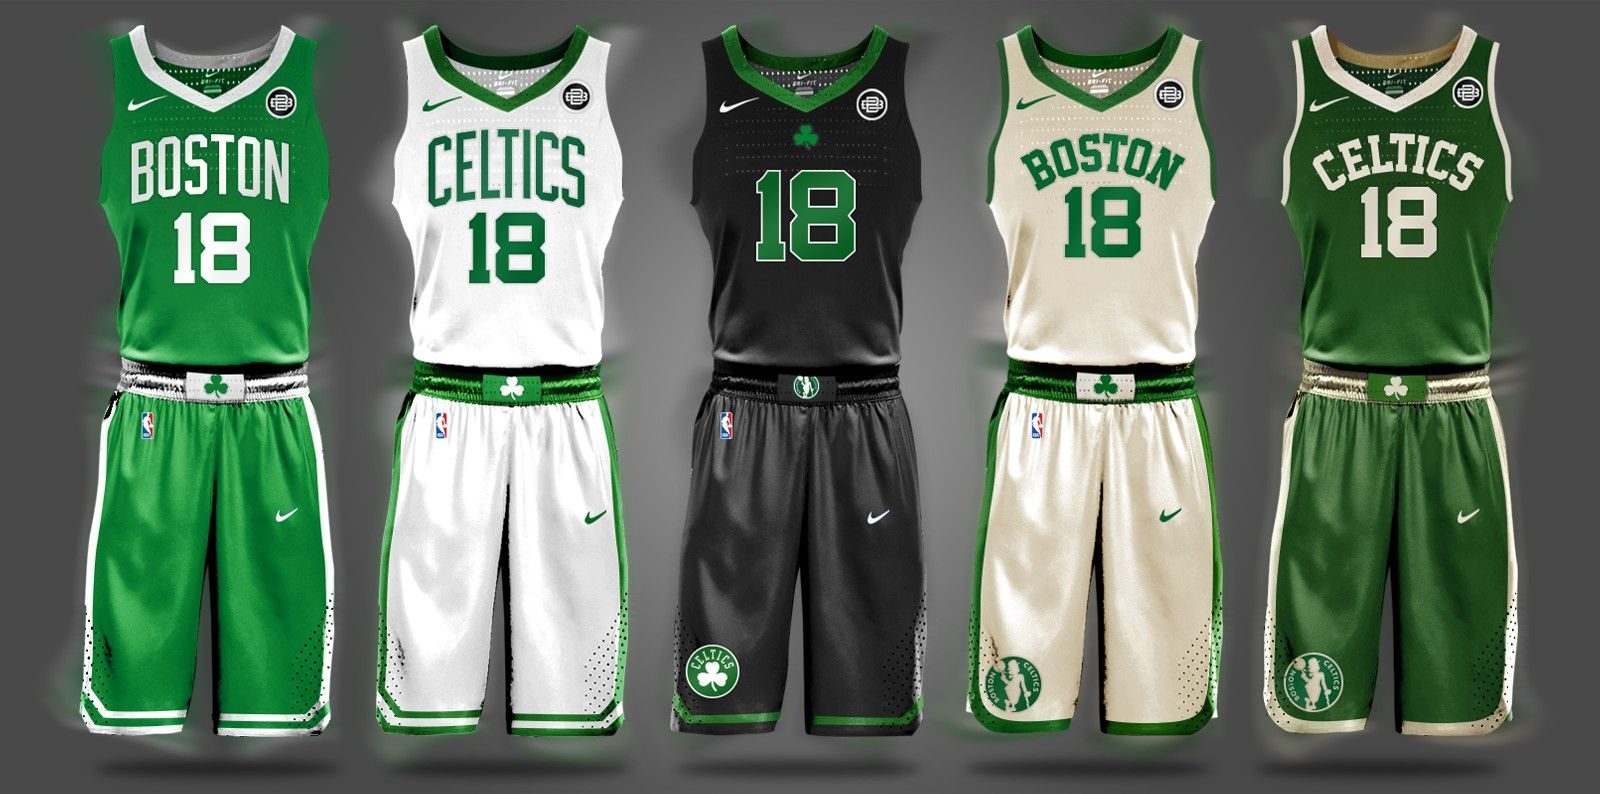 buy online 4a679 112f4 Boston Celtics jerseys | Sports 2 | Basketball jersey ...